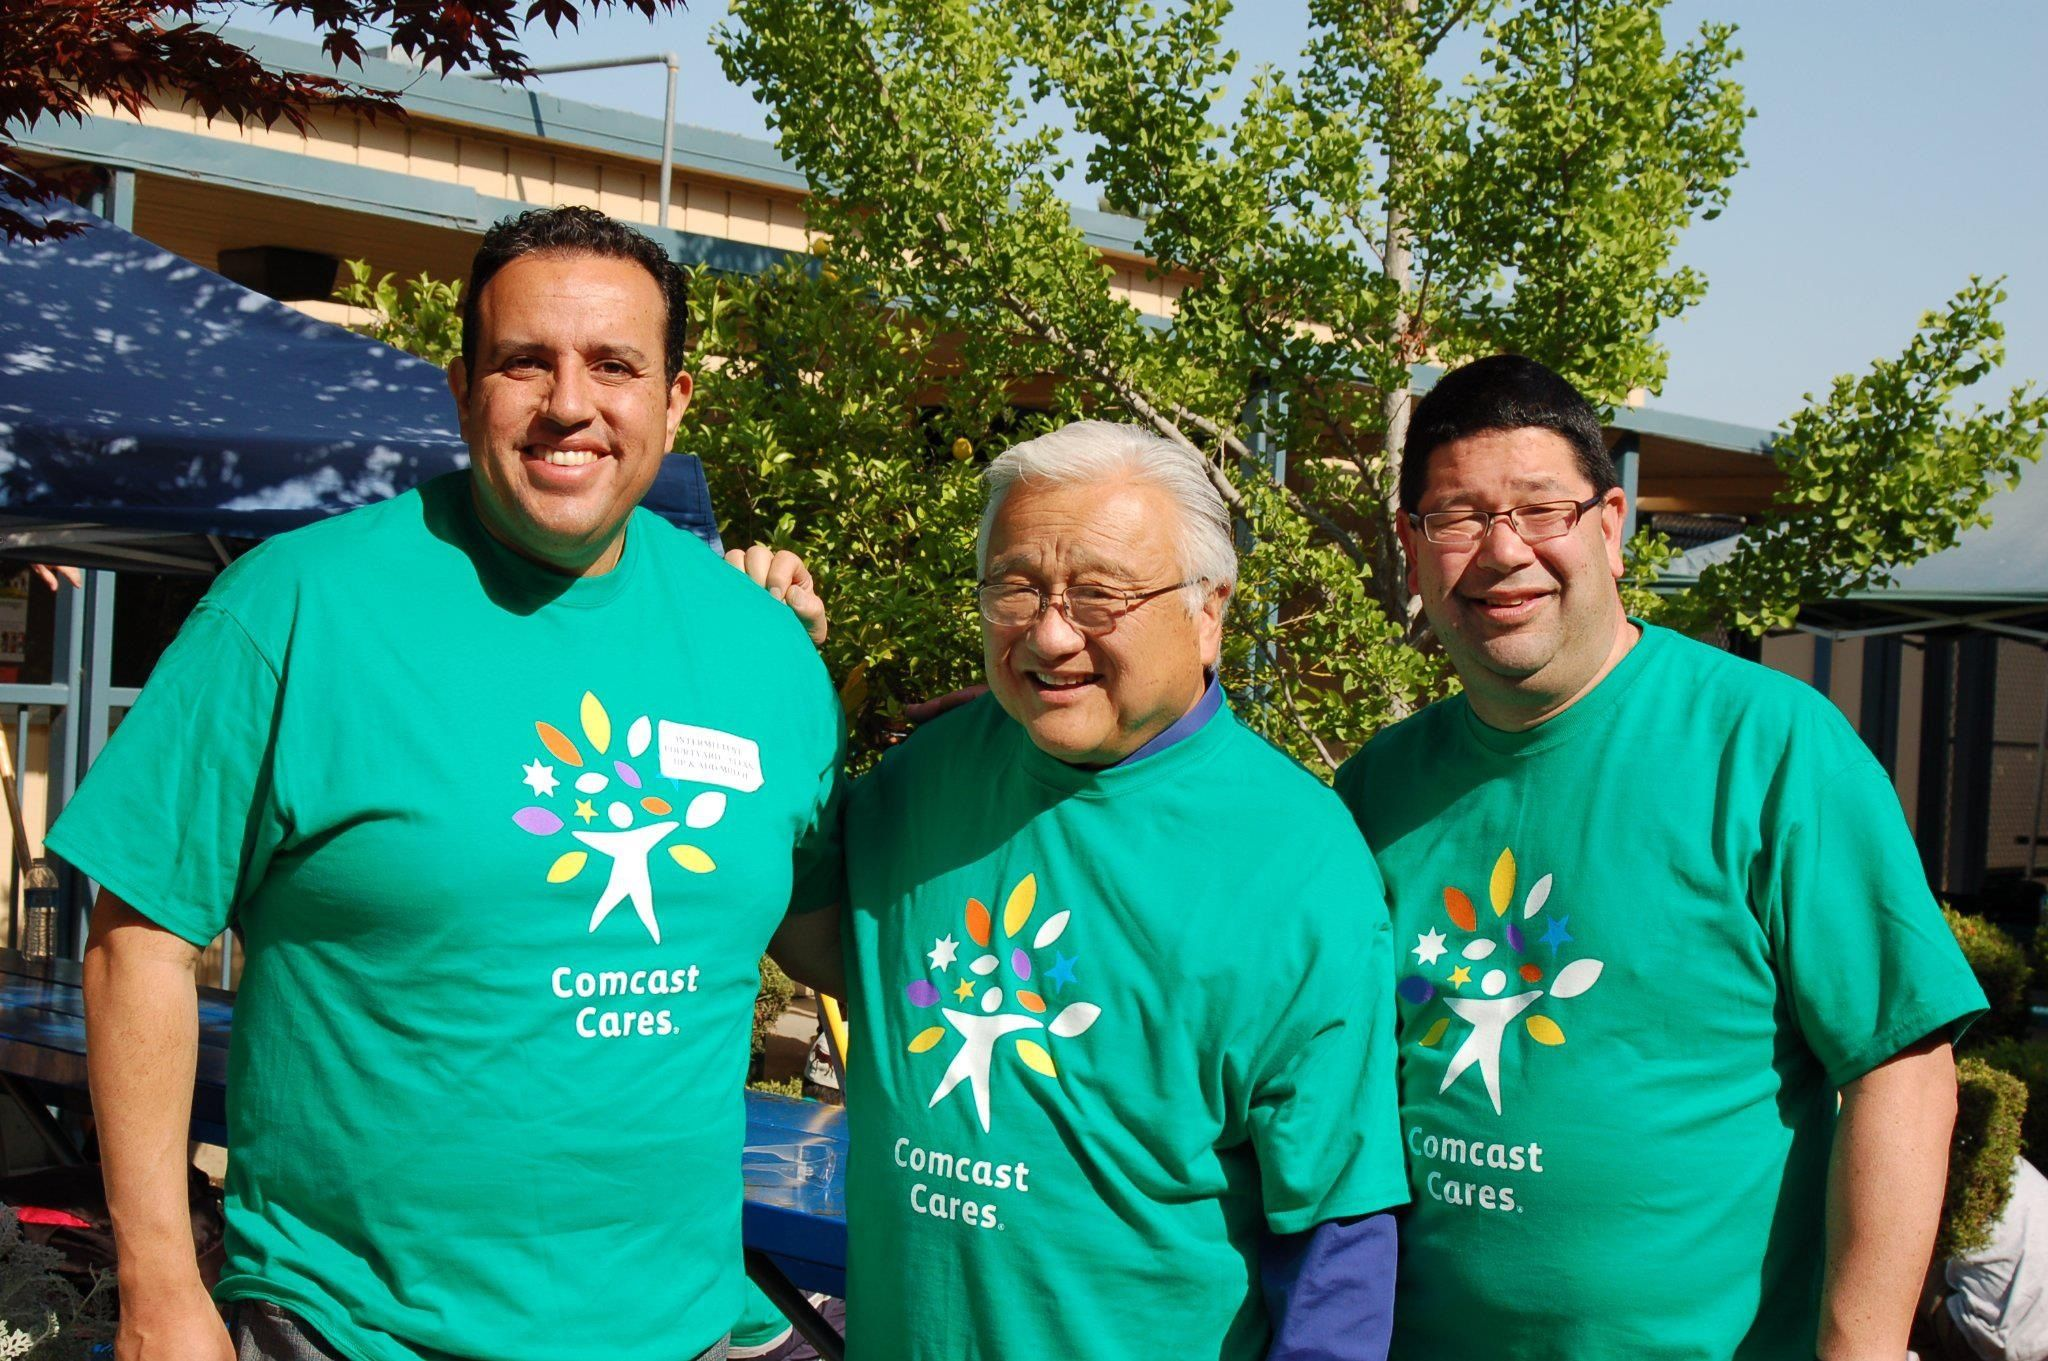 """Here's another great pic from Saturday's """"Comcast Cares Day"""" at Curtner Elementary in Milipitas, Calif. (L - R): Milpitas Councilmember Armando Gomez; U.S. Congressman Mike Honda; and John Gutierrez, Comcast Government Affairs Director."""